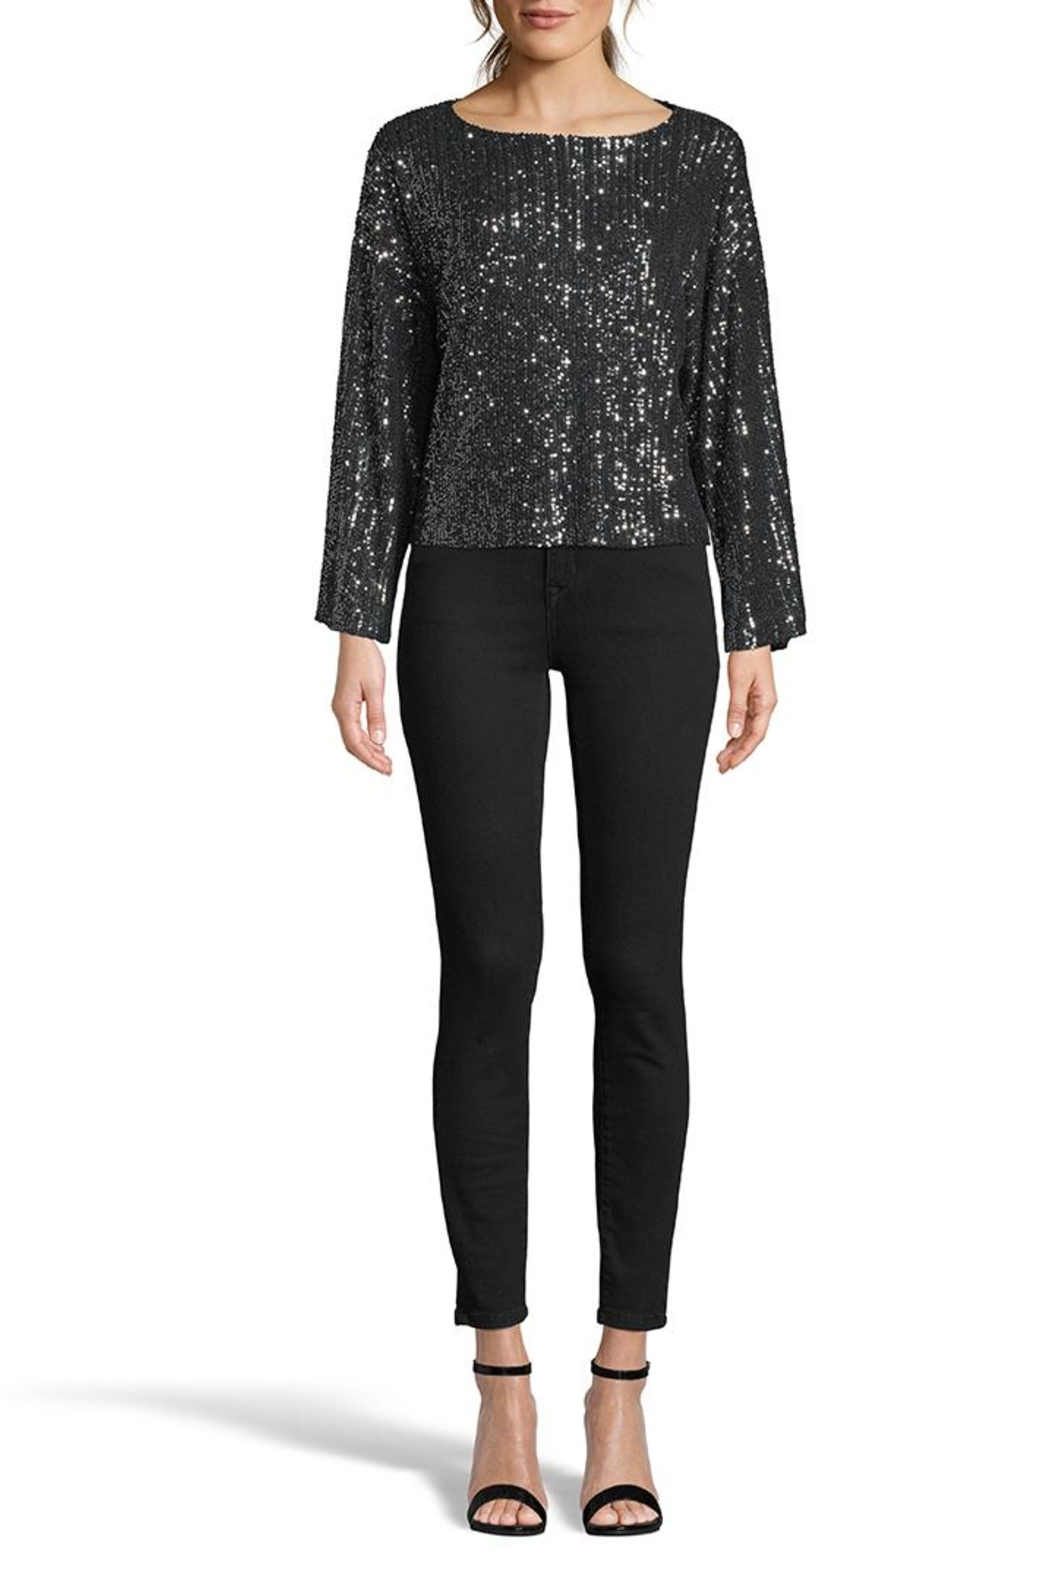 Cupcakes & Cashmere Cora Sequened Top - Main Image